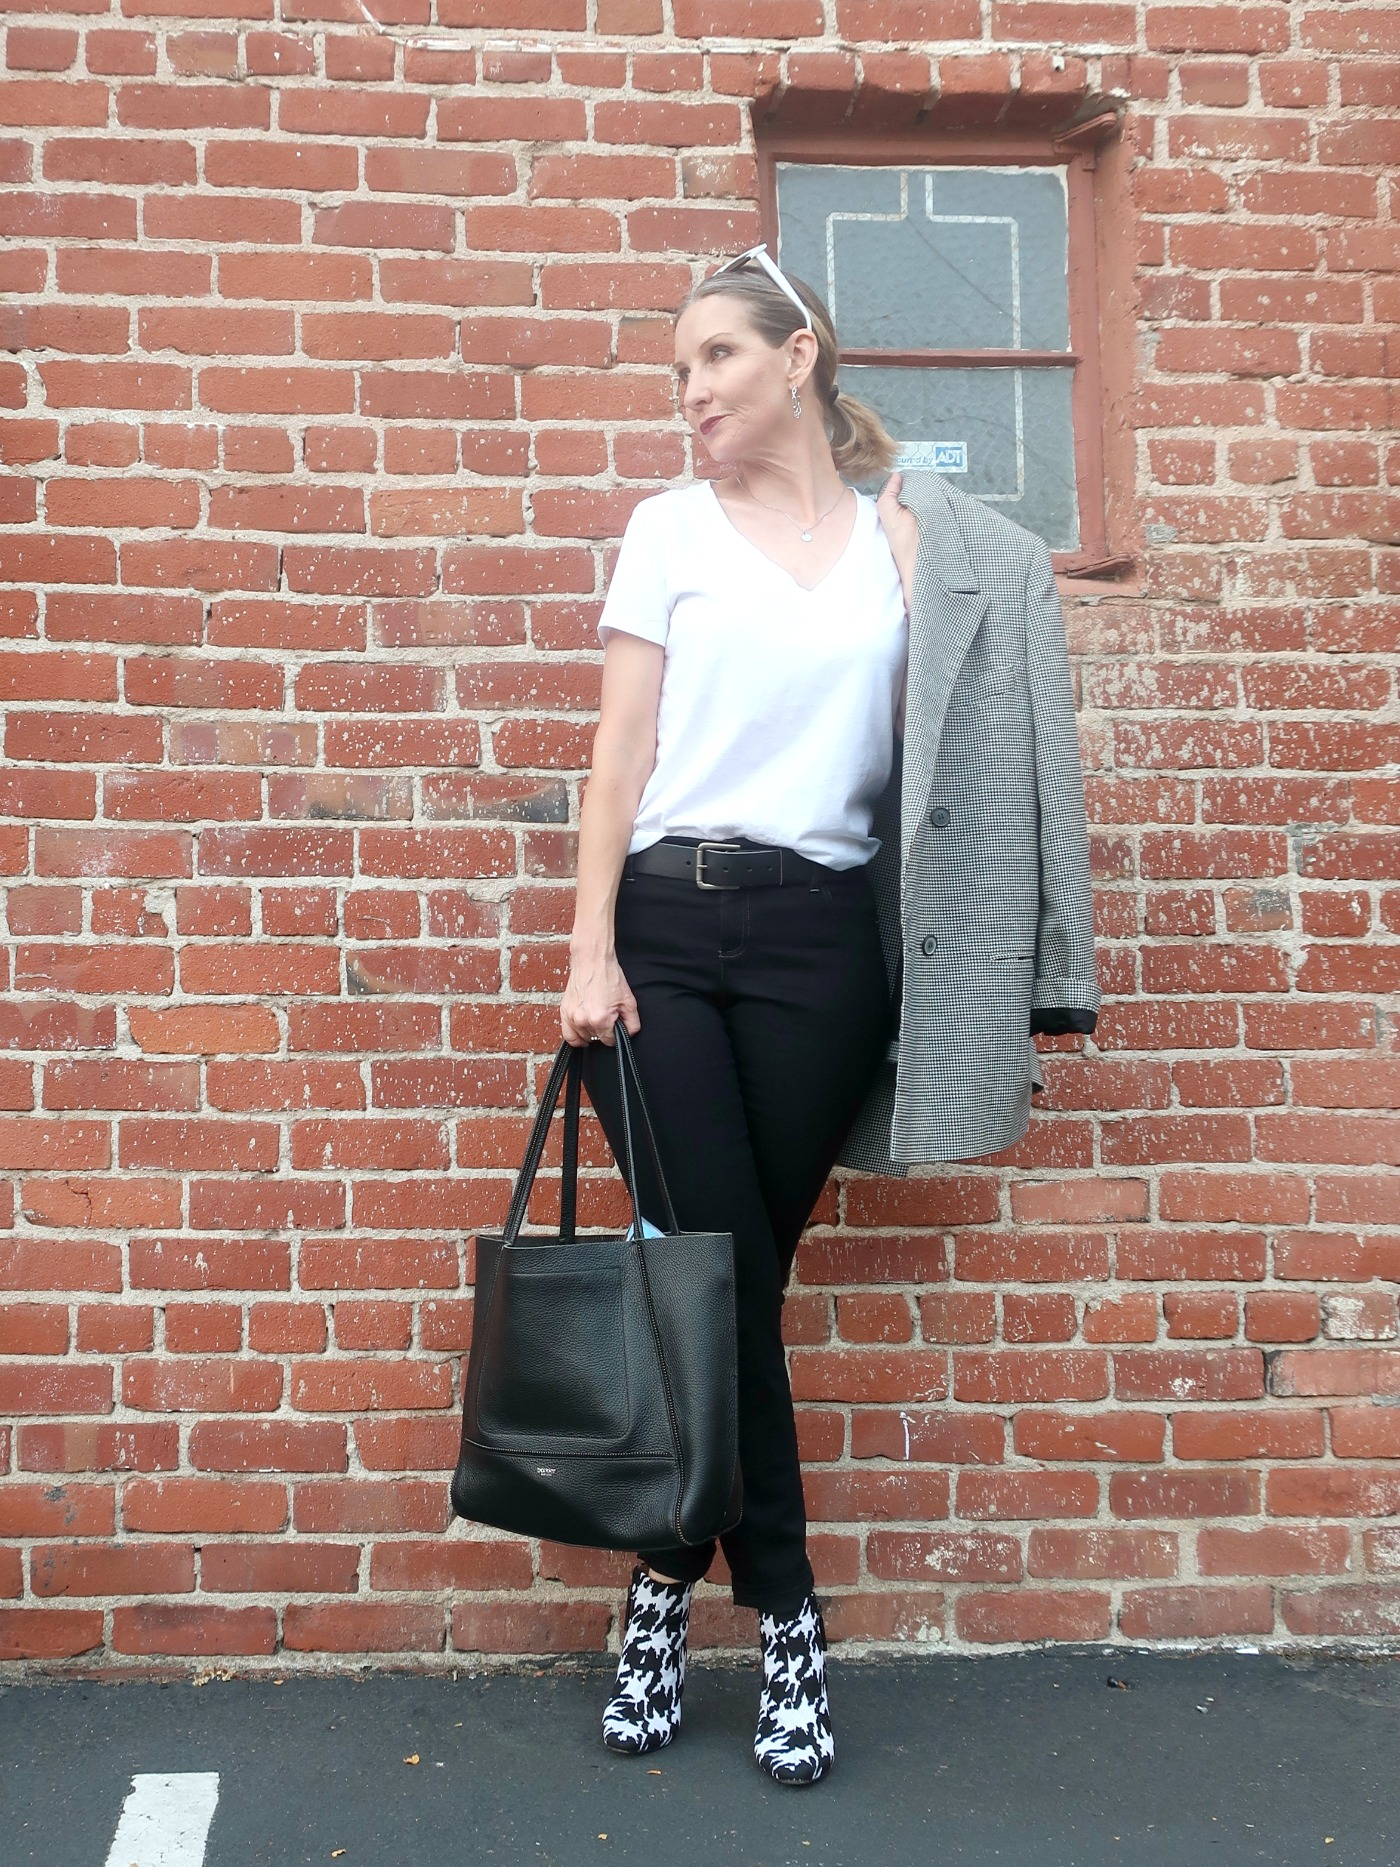 Black and white capsule wardrobe